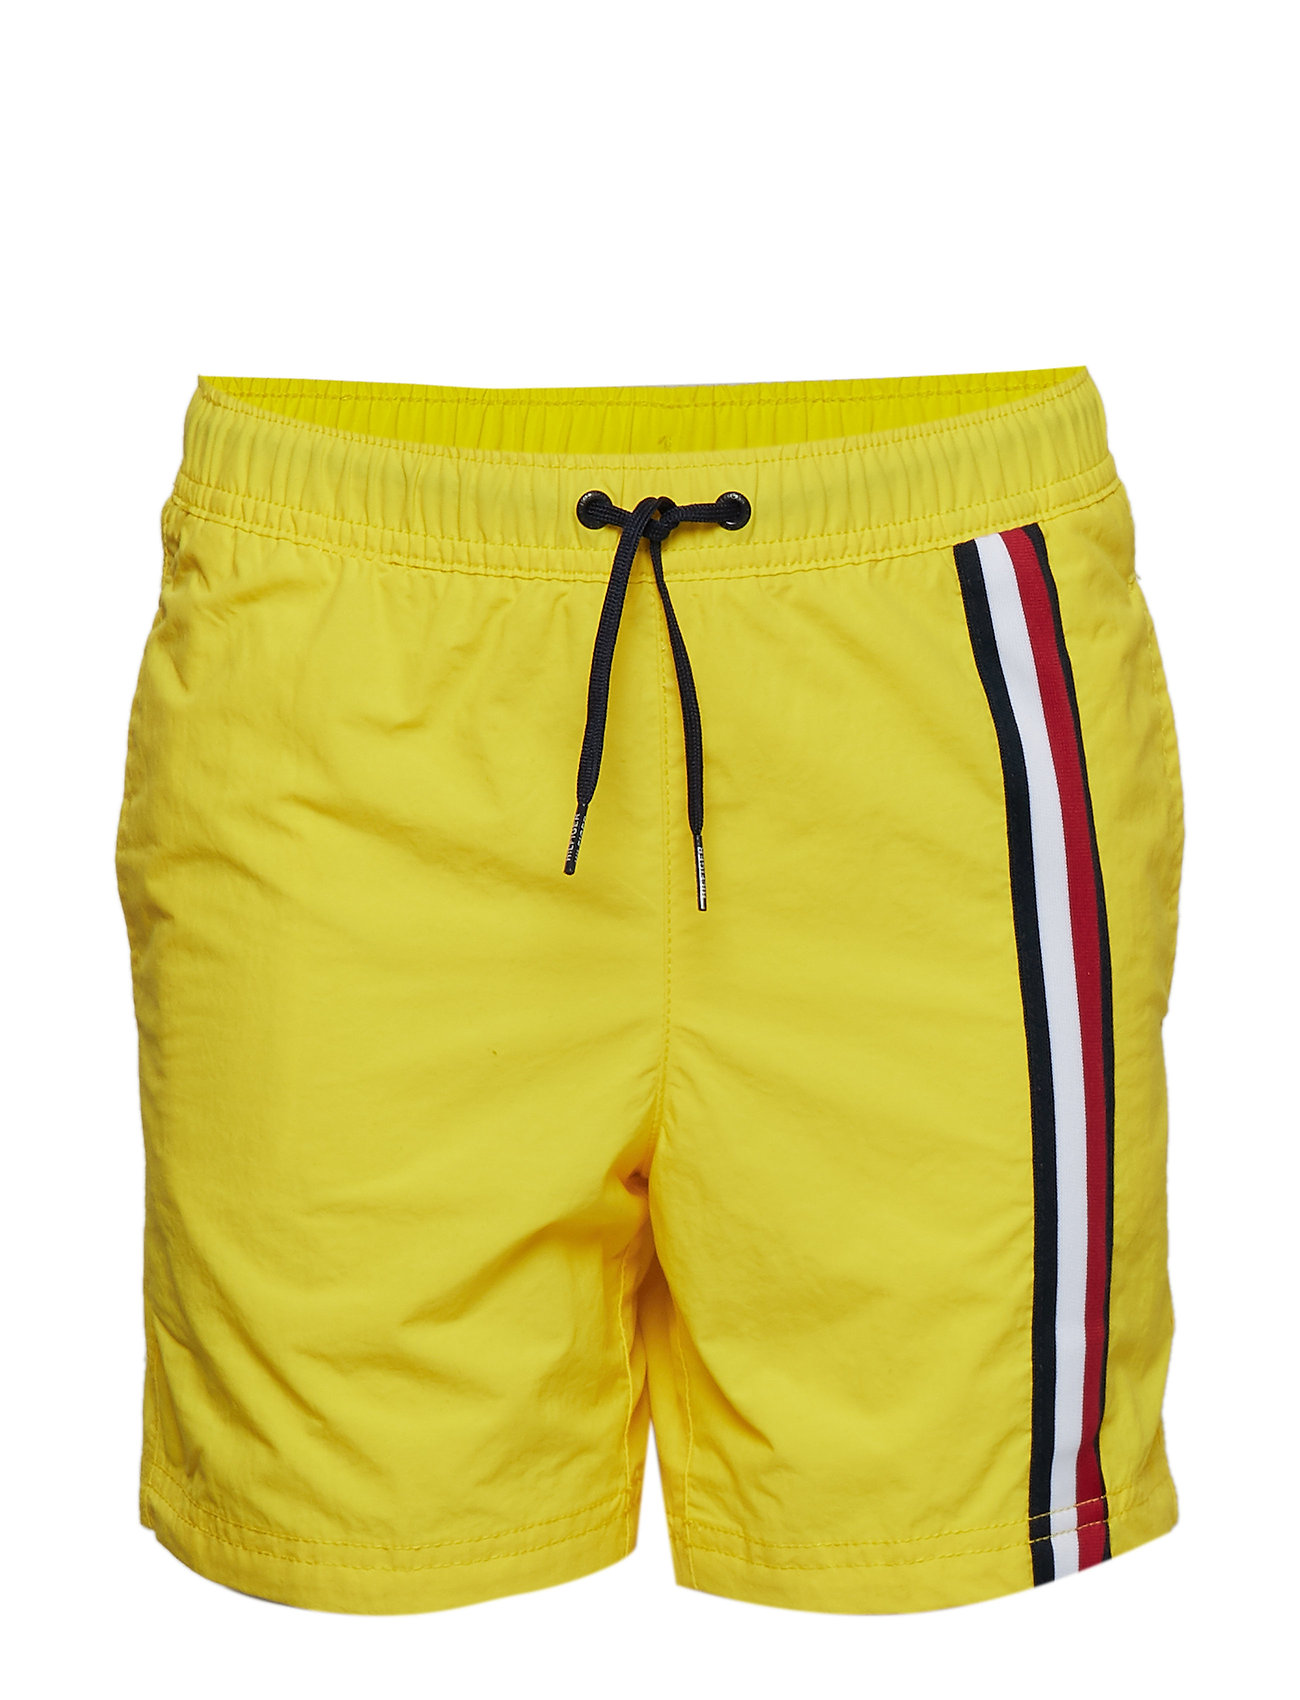 Tommy Hilfiger MEDIUM DRAWSTRING - EMPIRE YELLOW